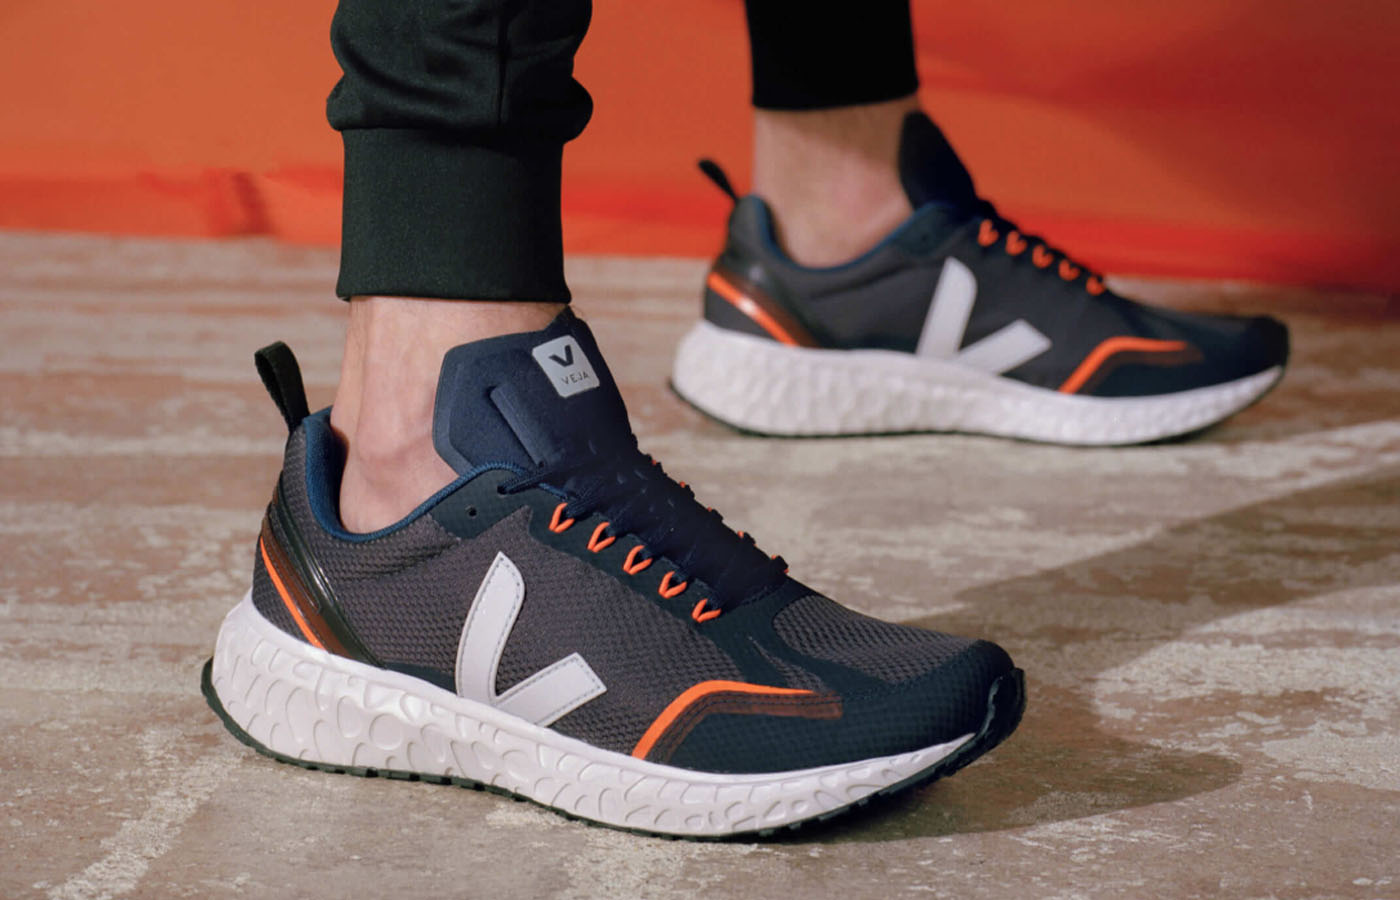 VEJA Condor: eco-friendly running shoe that's made with